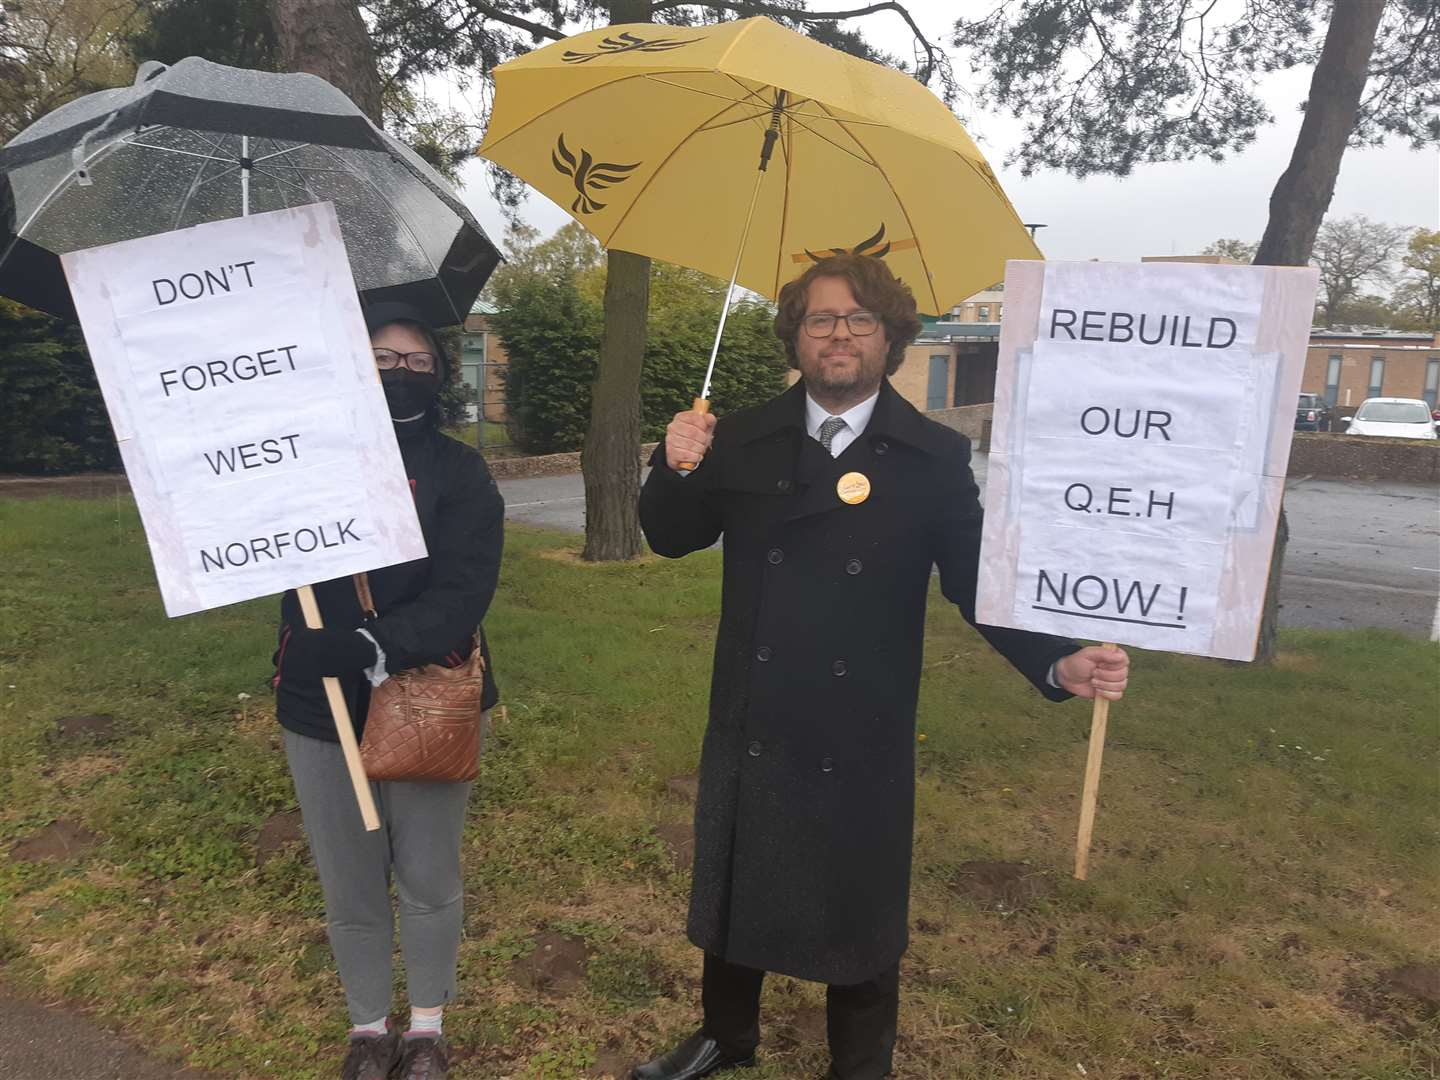 West Norfolk Liberal Democrats chairman Rob Colwell, right, joined the protest (46898350)